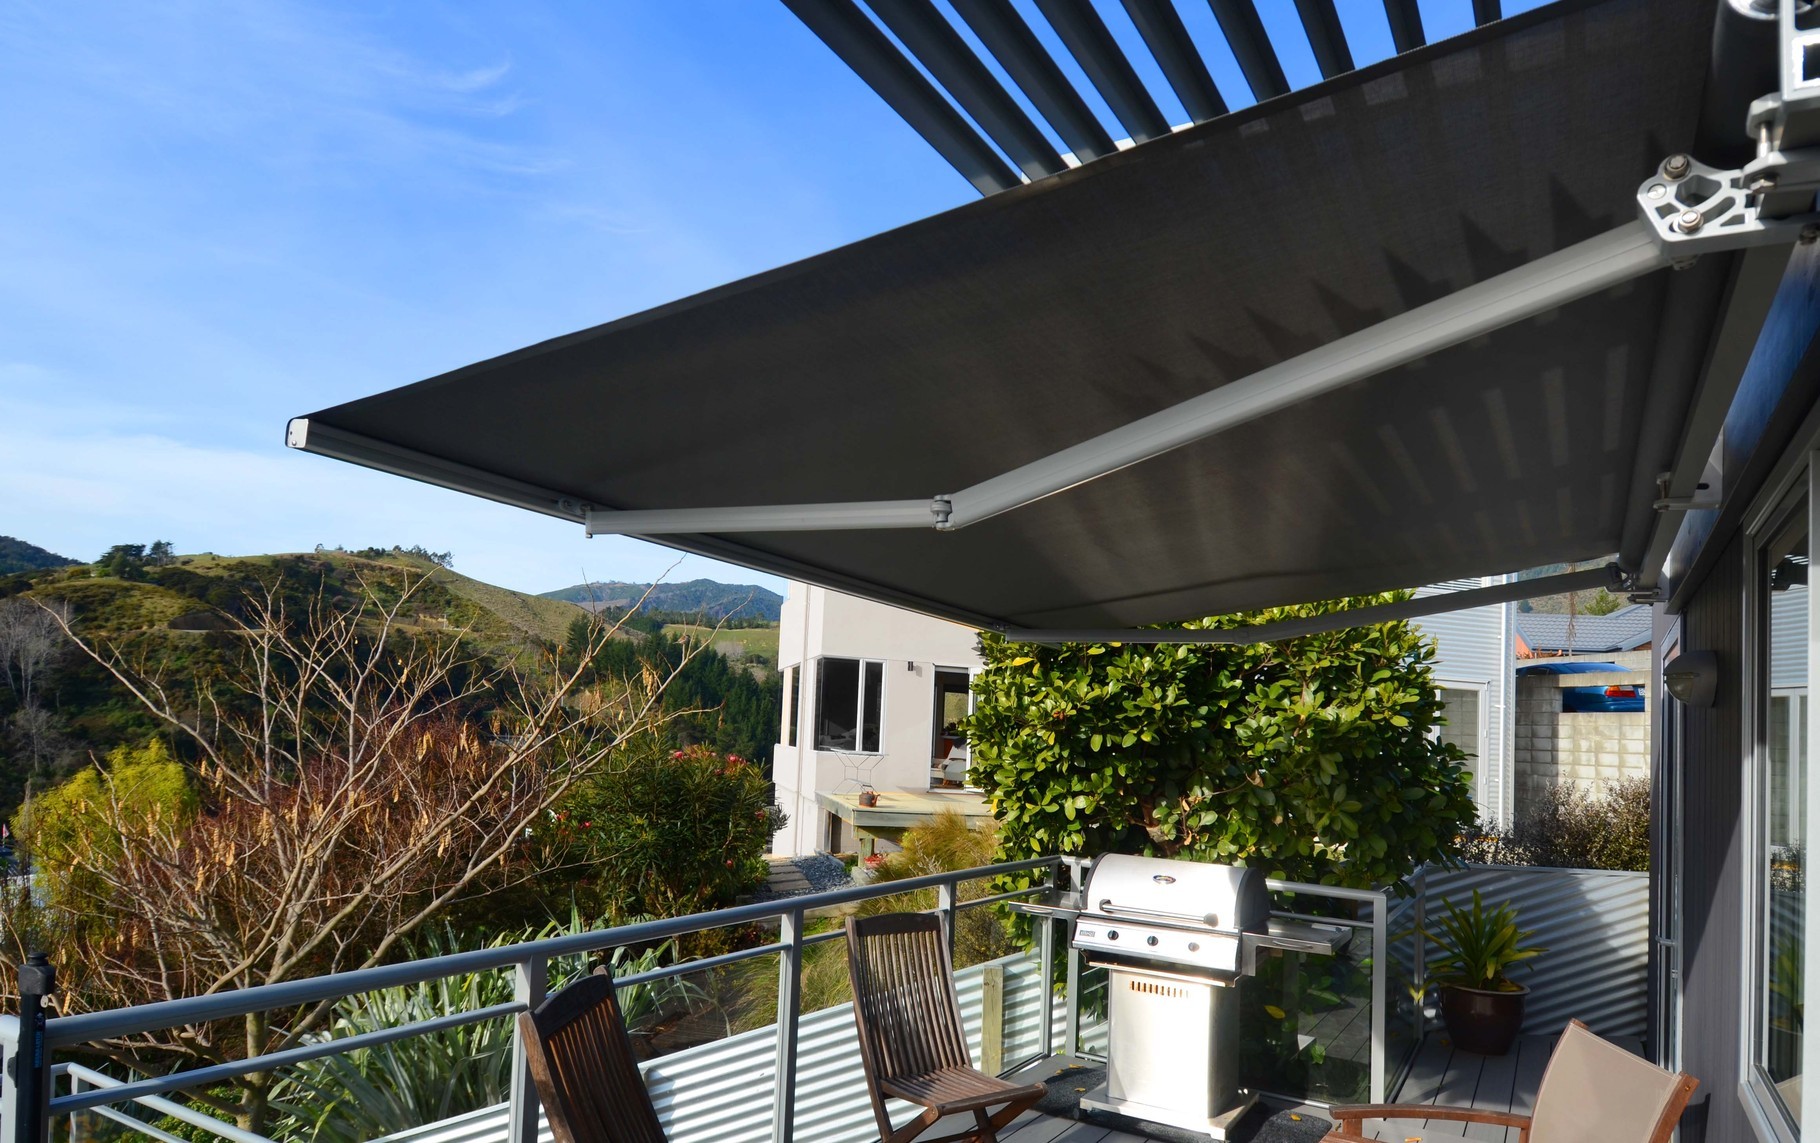 Franciaflex Horizon Retractable Awning, Nelson, New Zealand